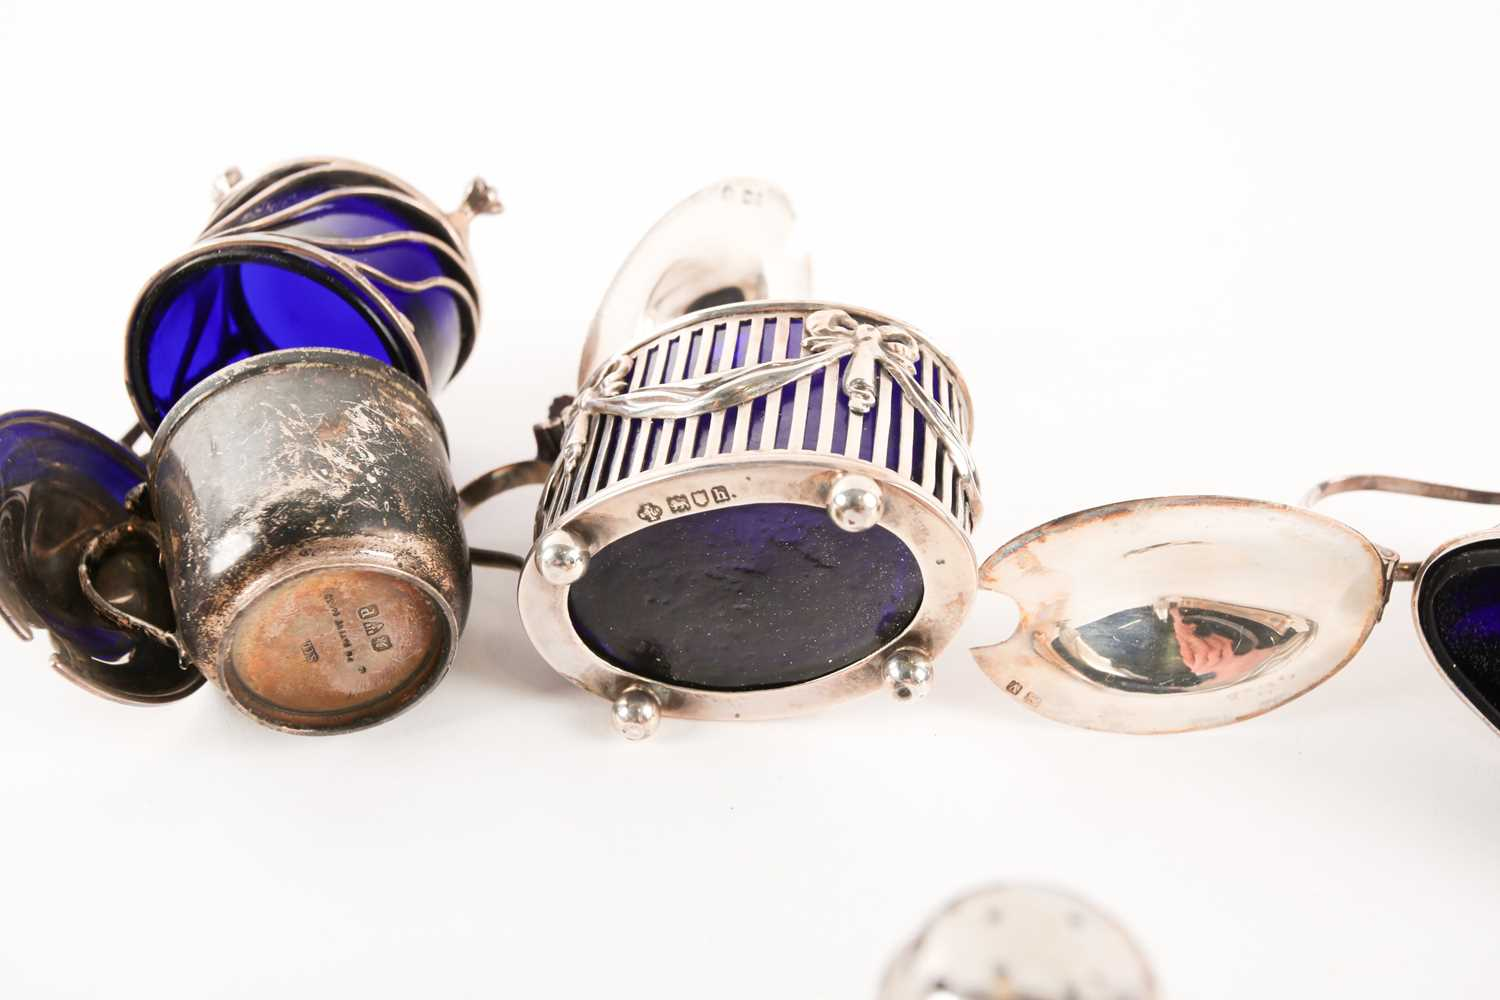 A collection of silver cruet items including lidded mustards, peppers and salts. Mixed makers and - Image 3 of 4